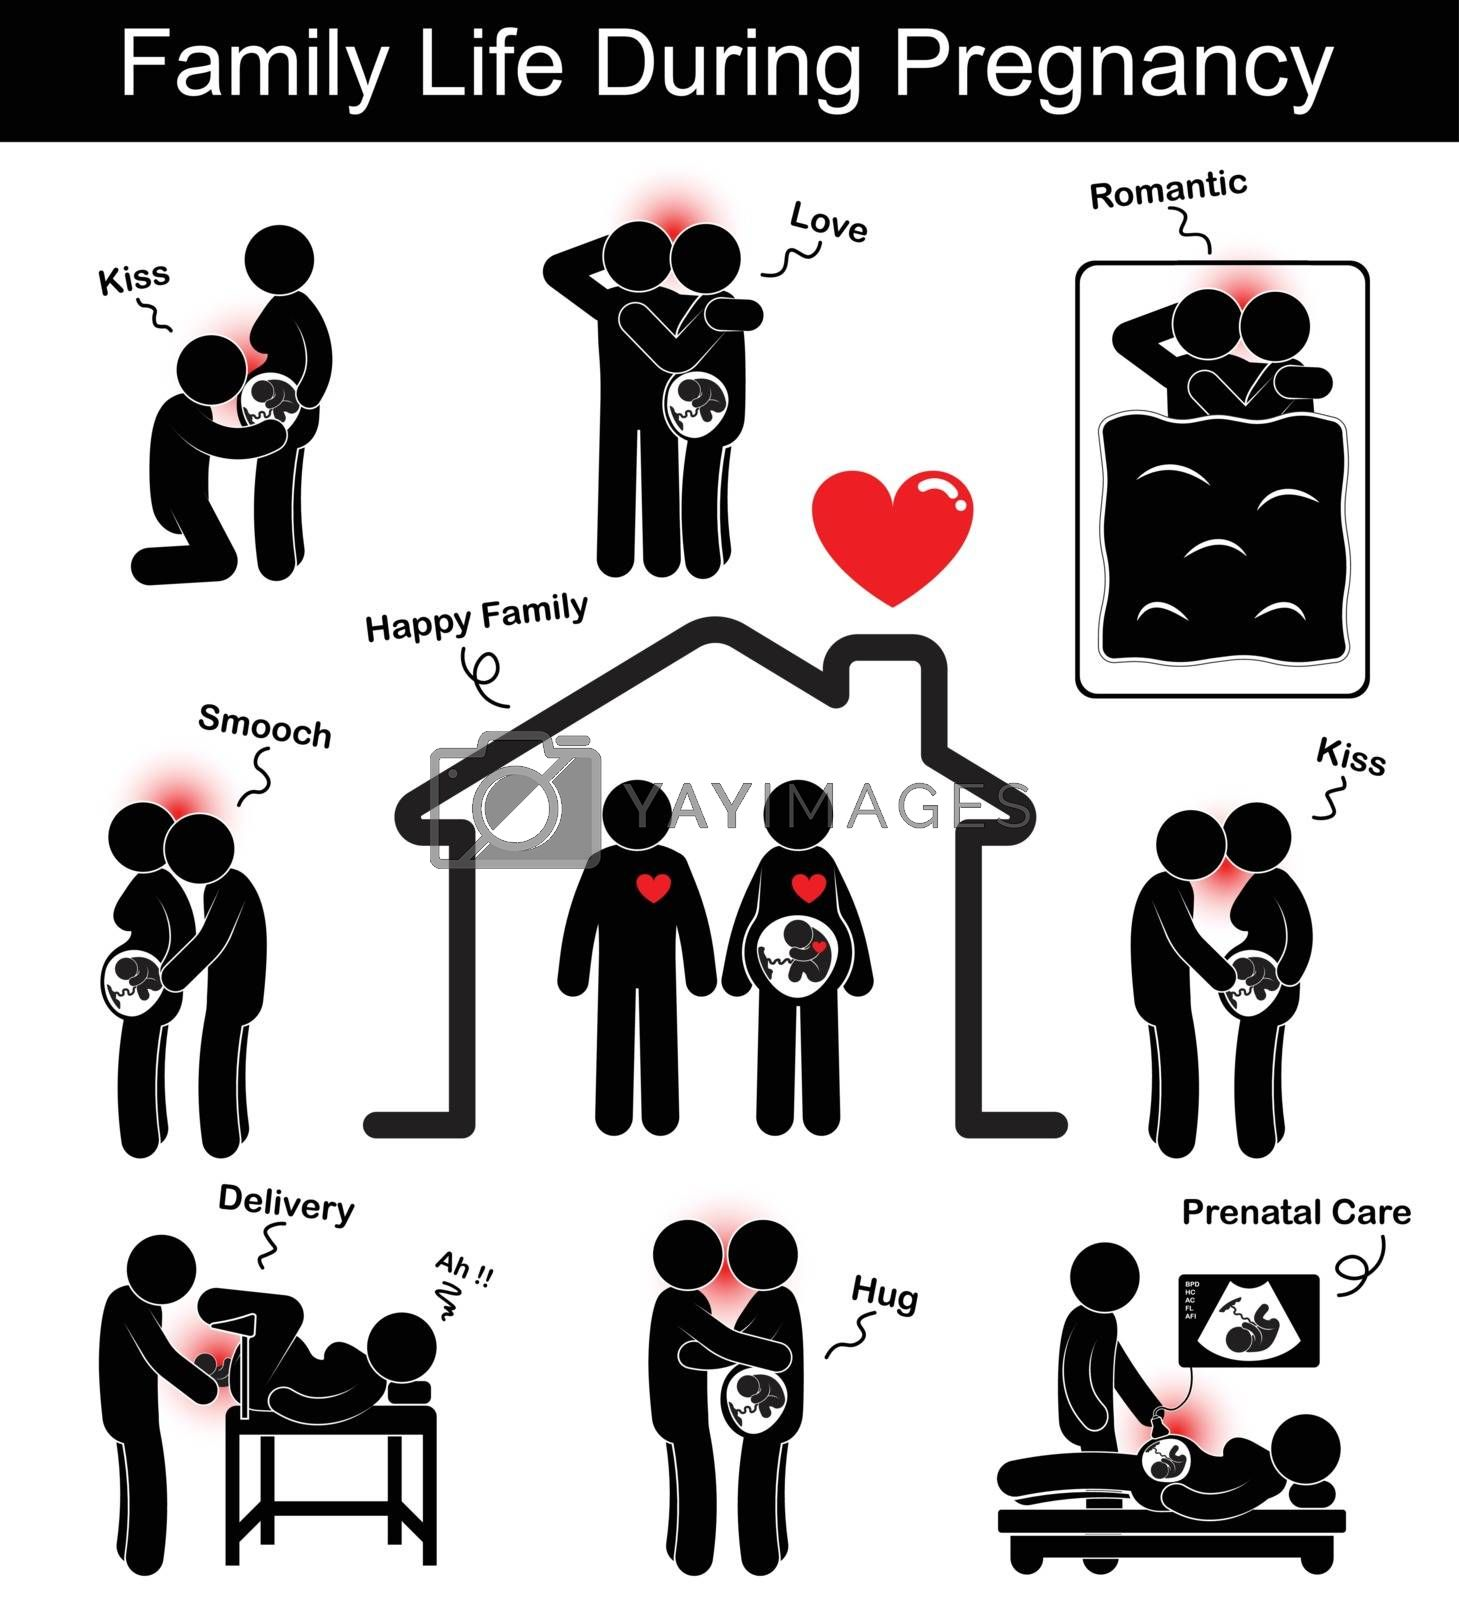 Family Life During Pregnancy Husband And Wife With Different Gesture Kiss Smooch Smack Hug Love Romance